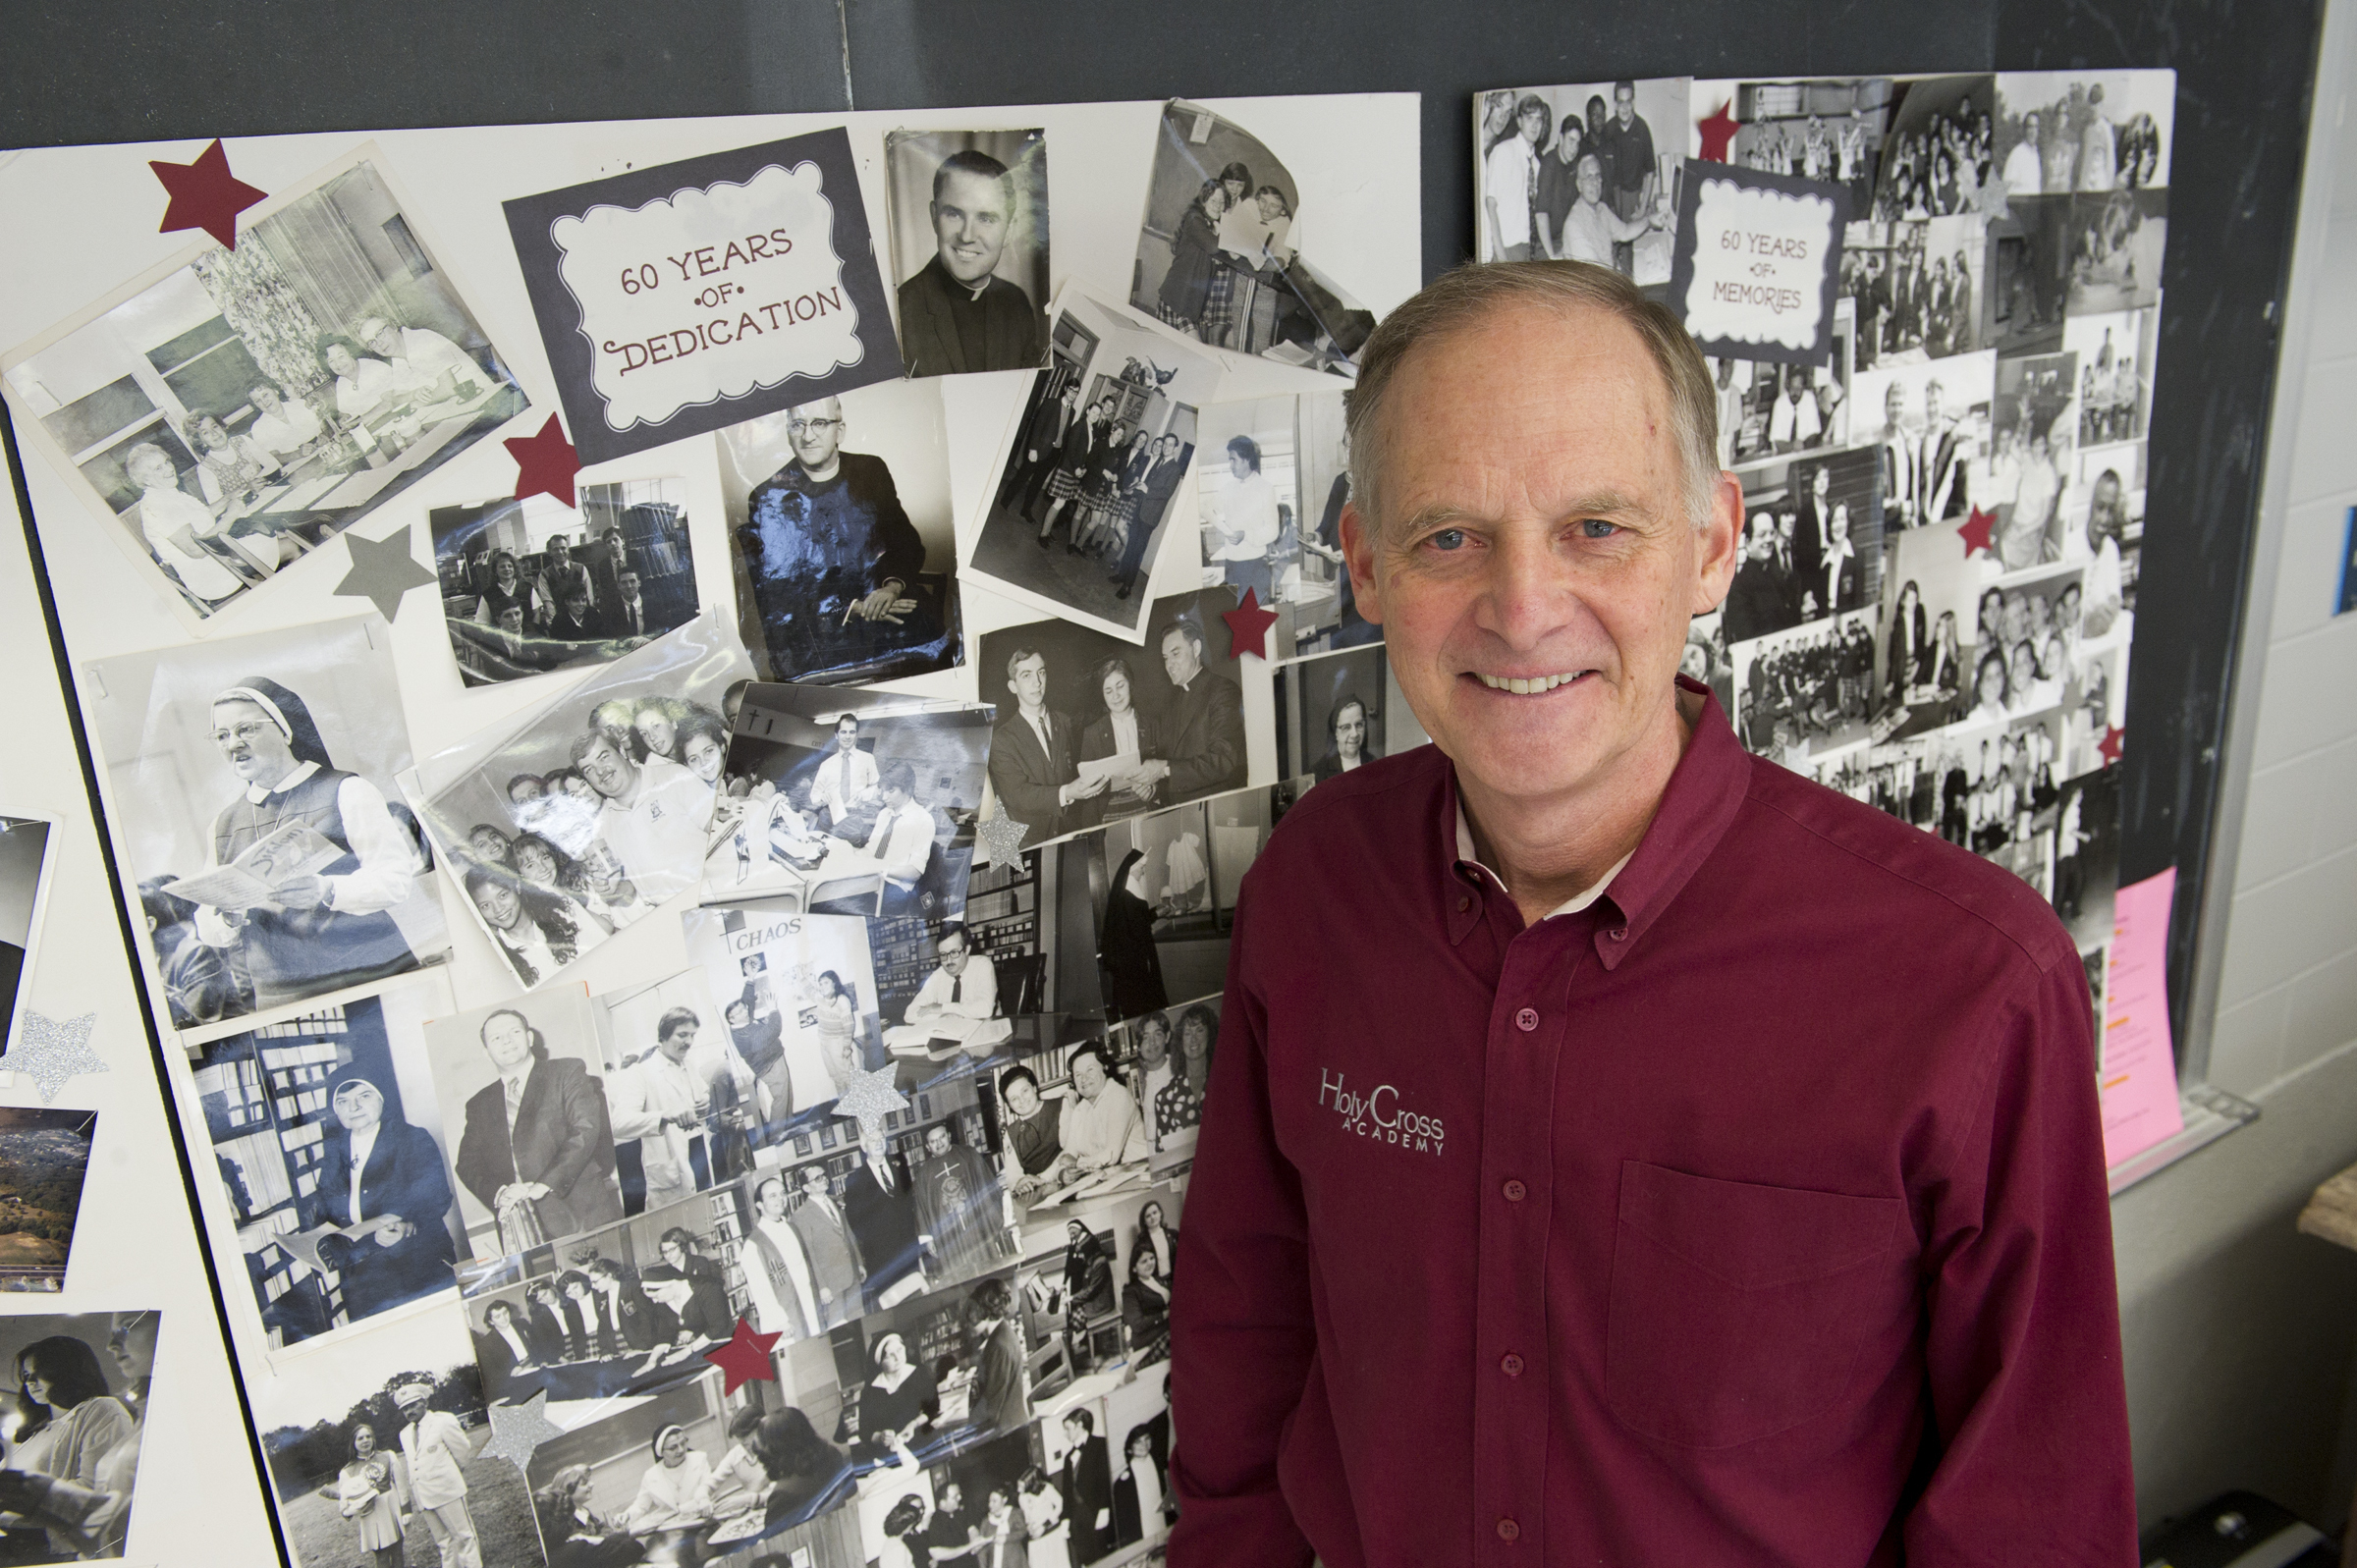 Holy Cross Academy Alumni President Dennis Murawski stands in front of a wall of vintage photographs celebrating the 60th Anniversary of the Delran, NJ based Roman Catholic high school on Wednesday, February 14, 2018. Holy Cross is the only Roman Catholic high school in Burlington County, NJ, and is closing at the end of the school year. A group of alumni, including Murawski, are working on a plan to keep it open as an independent Catholic school. Avi Steinhardt / For the Philadelphia Inquirer